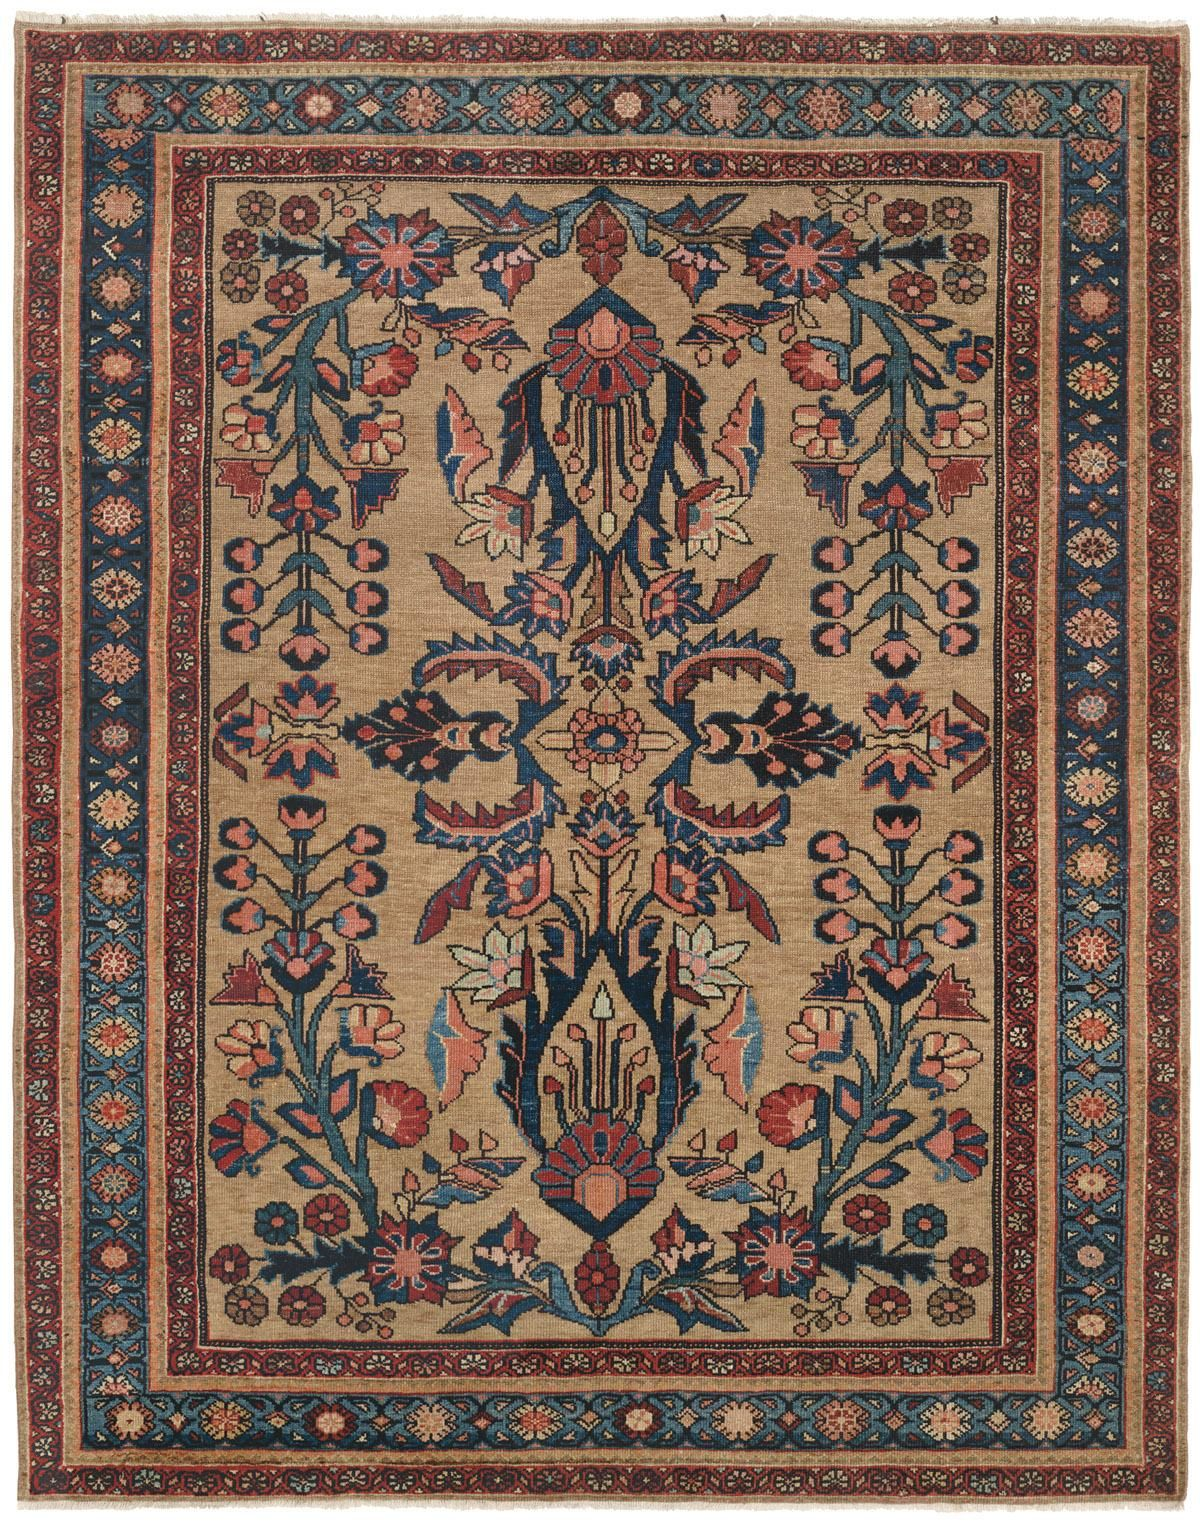 Tappeto Persiano Caratteristiche Guide To Antique Oriental Camelhair Rugs Tappeti 3